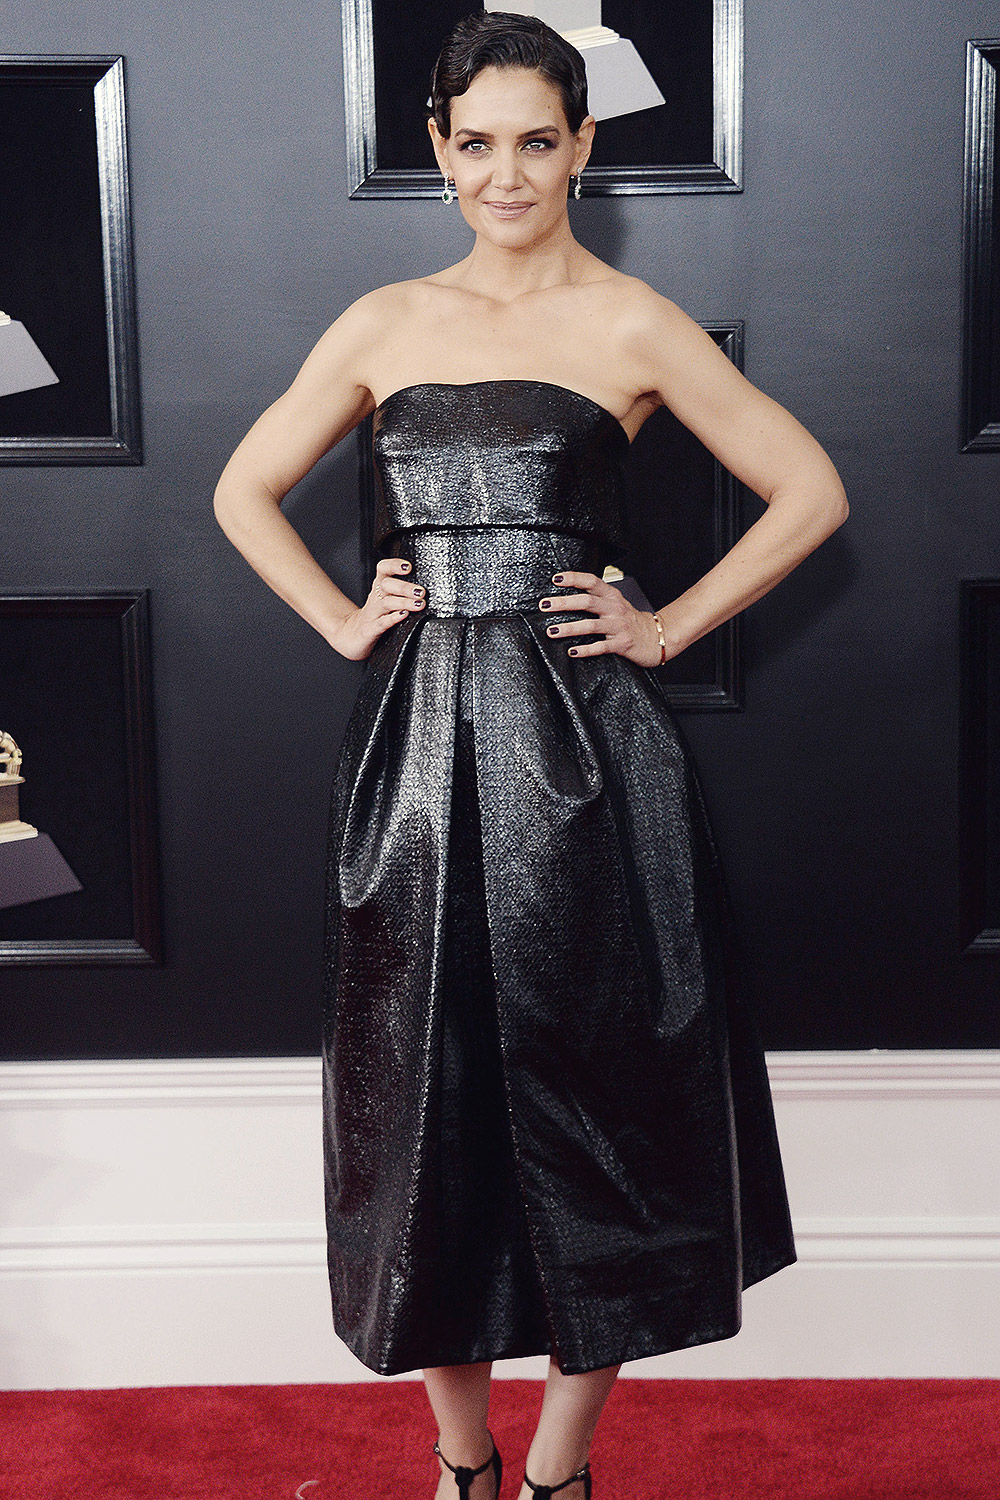 Katie Holmes attends 60th Annual Grammy Awards